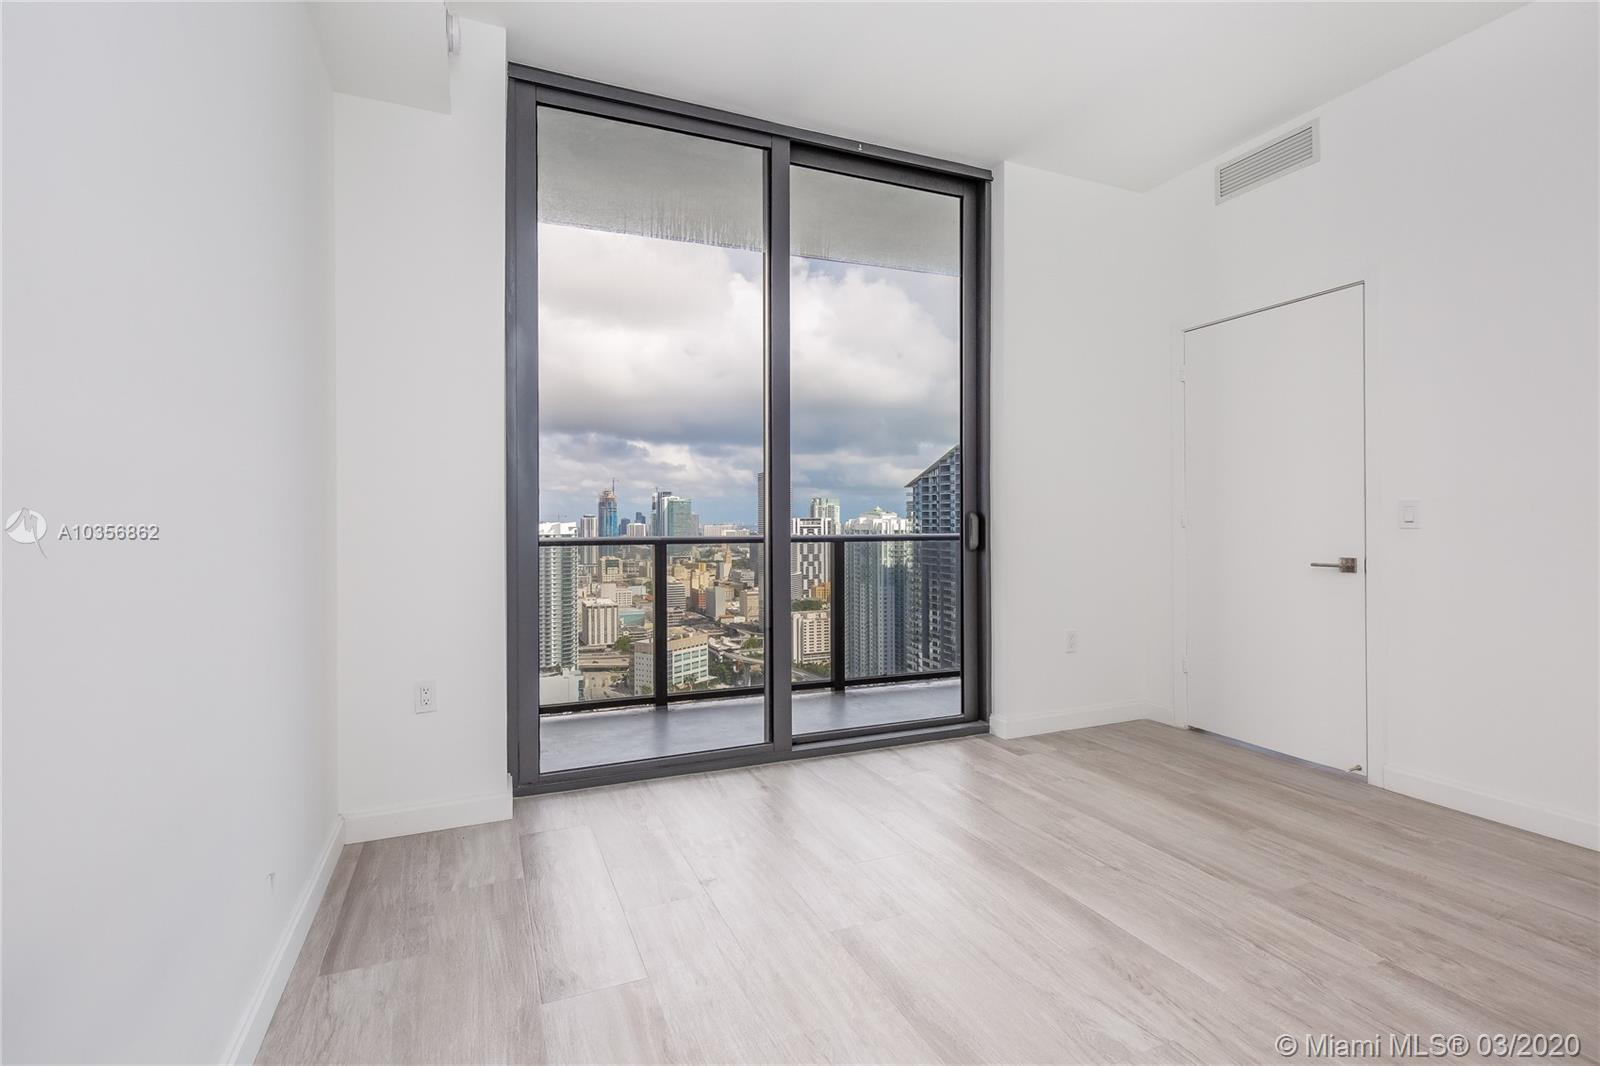 55 SW 9th St, Miami, FL 33130, Brickell Heights West Tower #4101, Brickell, Miami A10356862 image #23